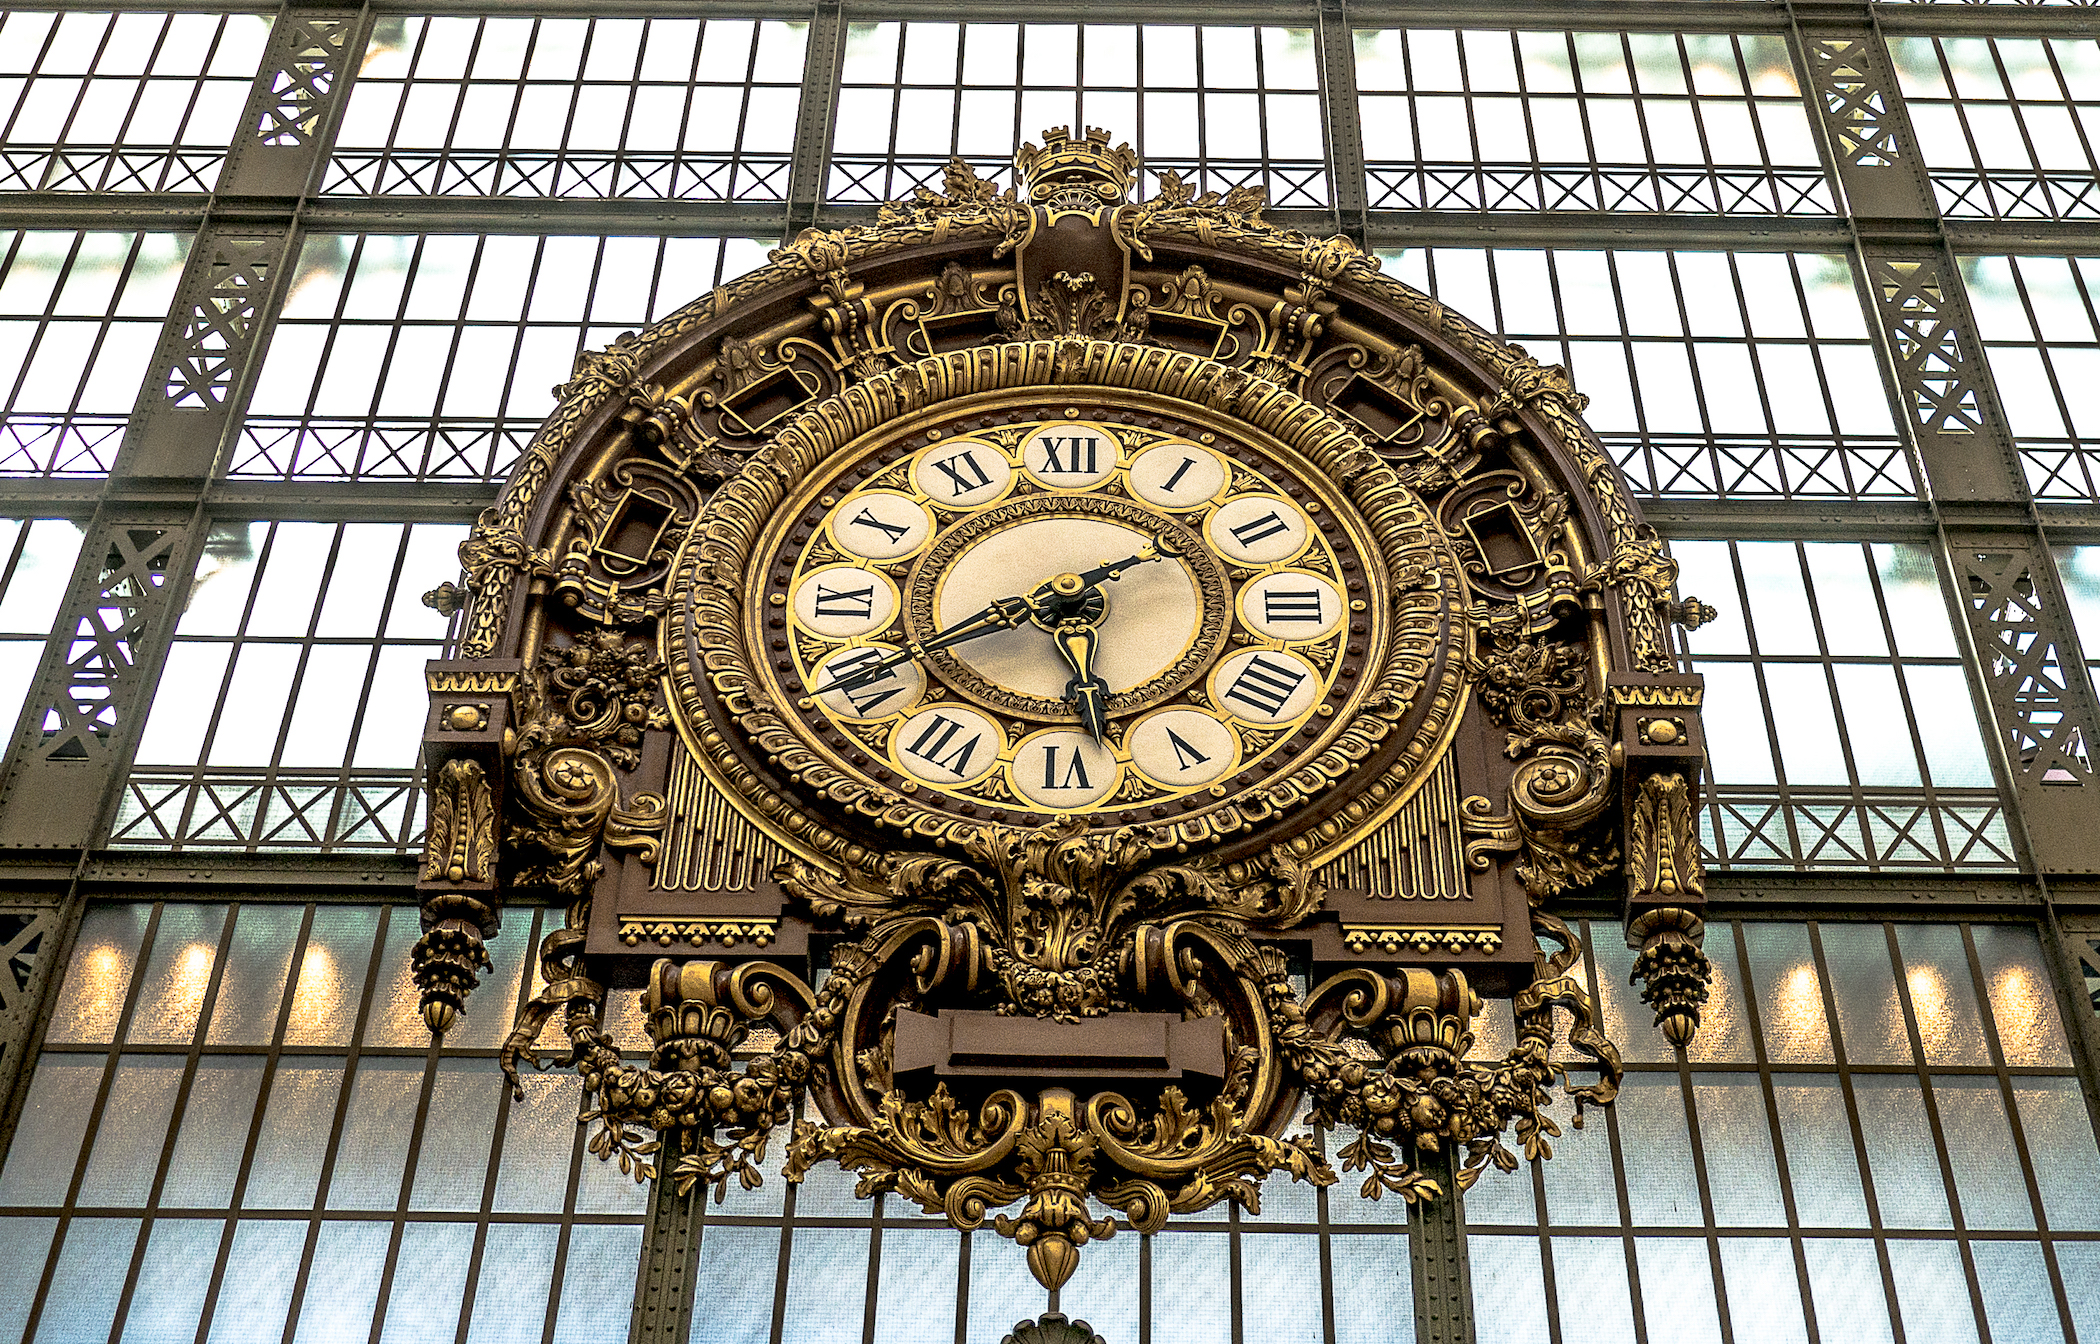 Why Do Clocks And Watches Use The Roman Numeral Iiii Instead Of Iv